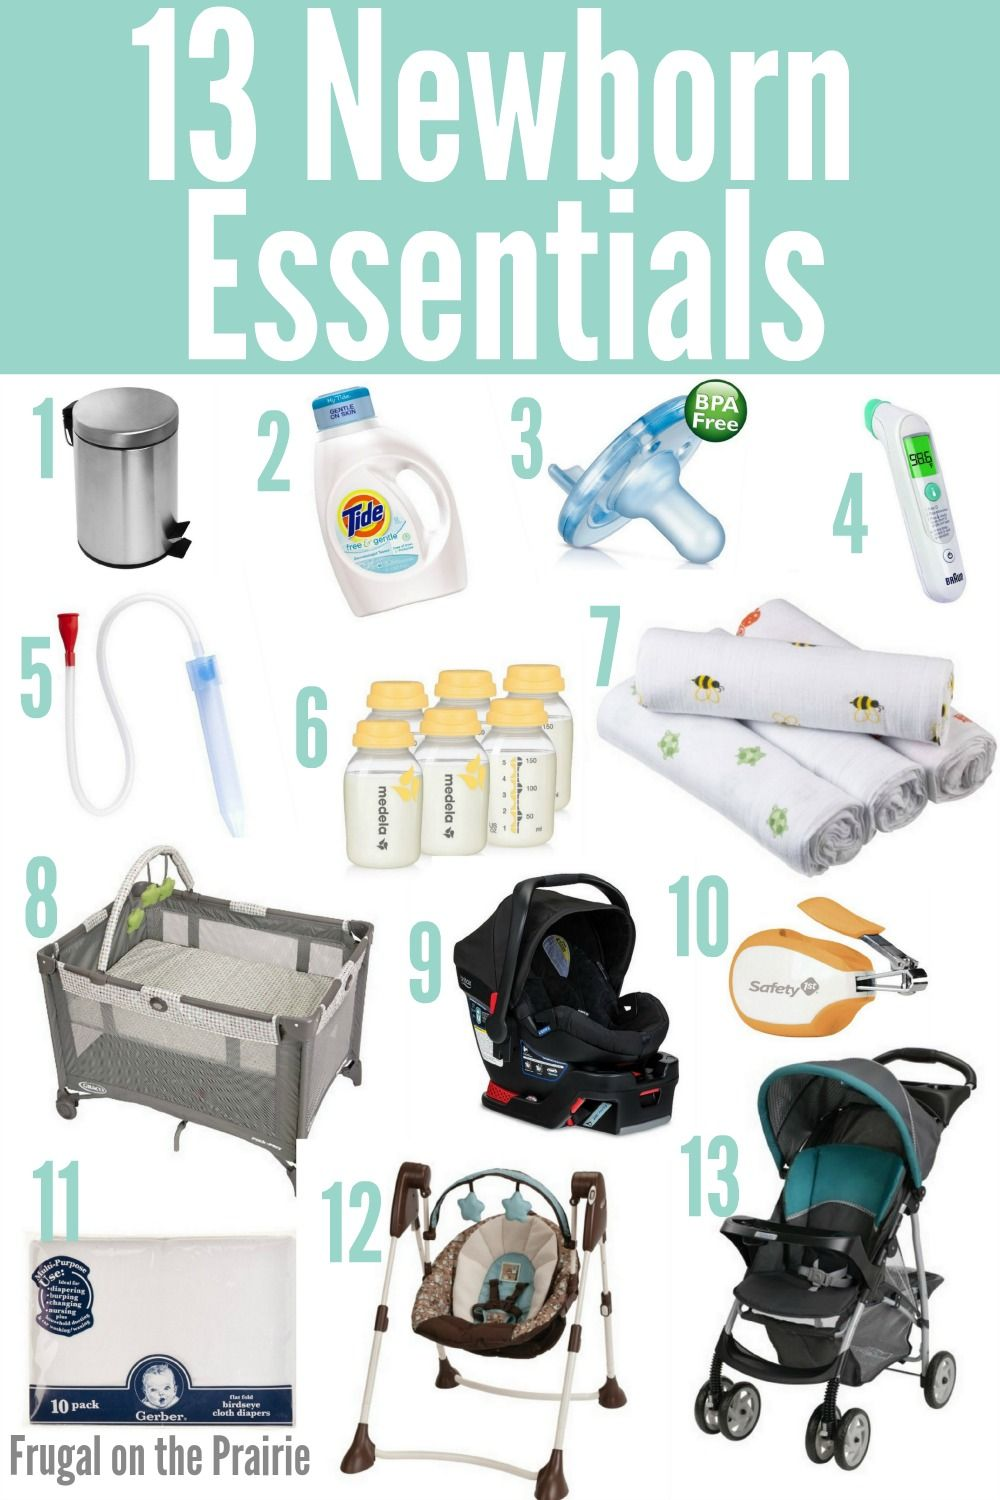 13 Newborn Essentials Baby Must Have Items Allison Lindstrom Advice On How A Blog Works Newborn Essentials Baby Must Haves Newborn Essentials Checklist